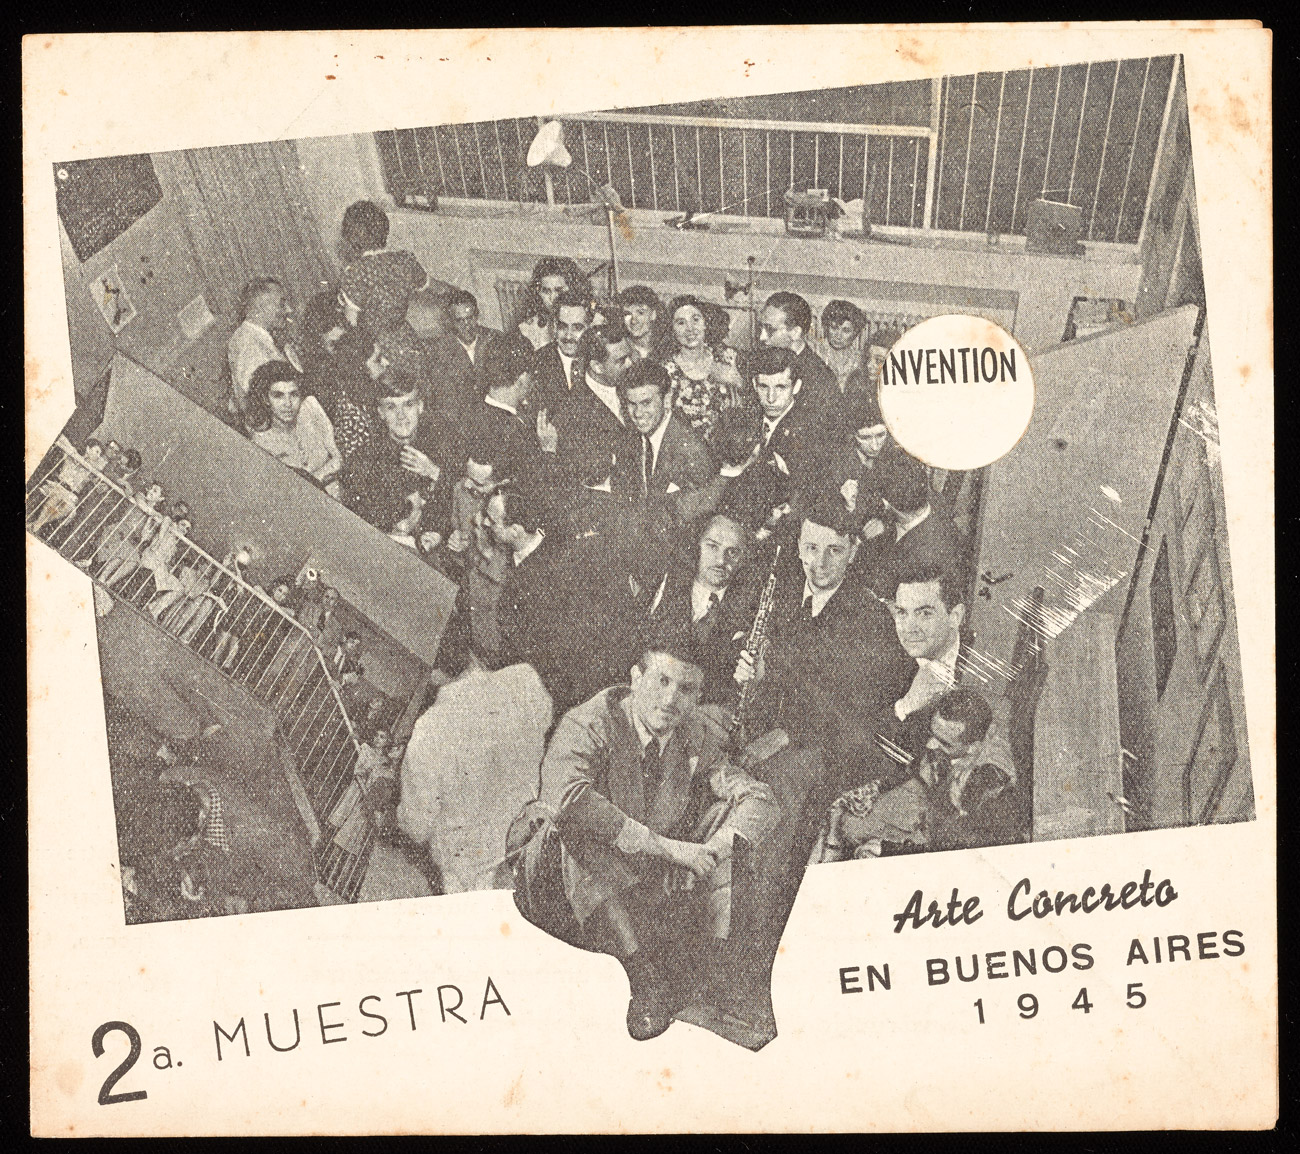 A stained flyer reading 2a. Muestra Arte Concreto en Buenos Aires 1945. A collage of photos shows well dressed young people packed into a gallery.